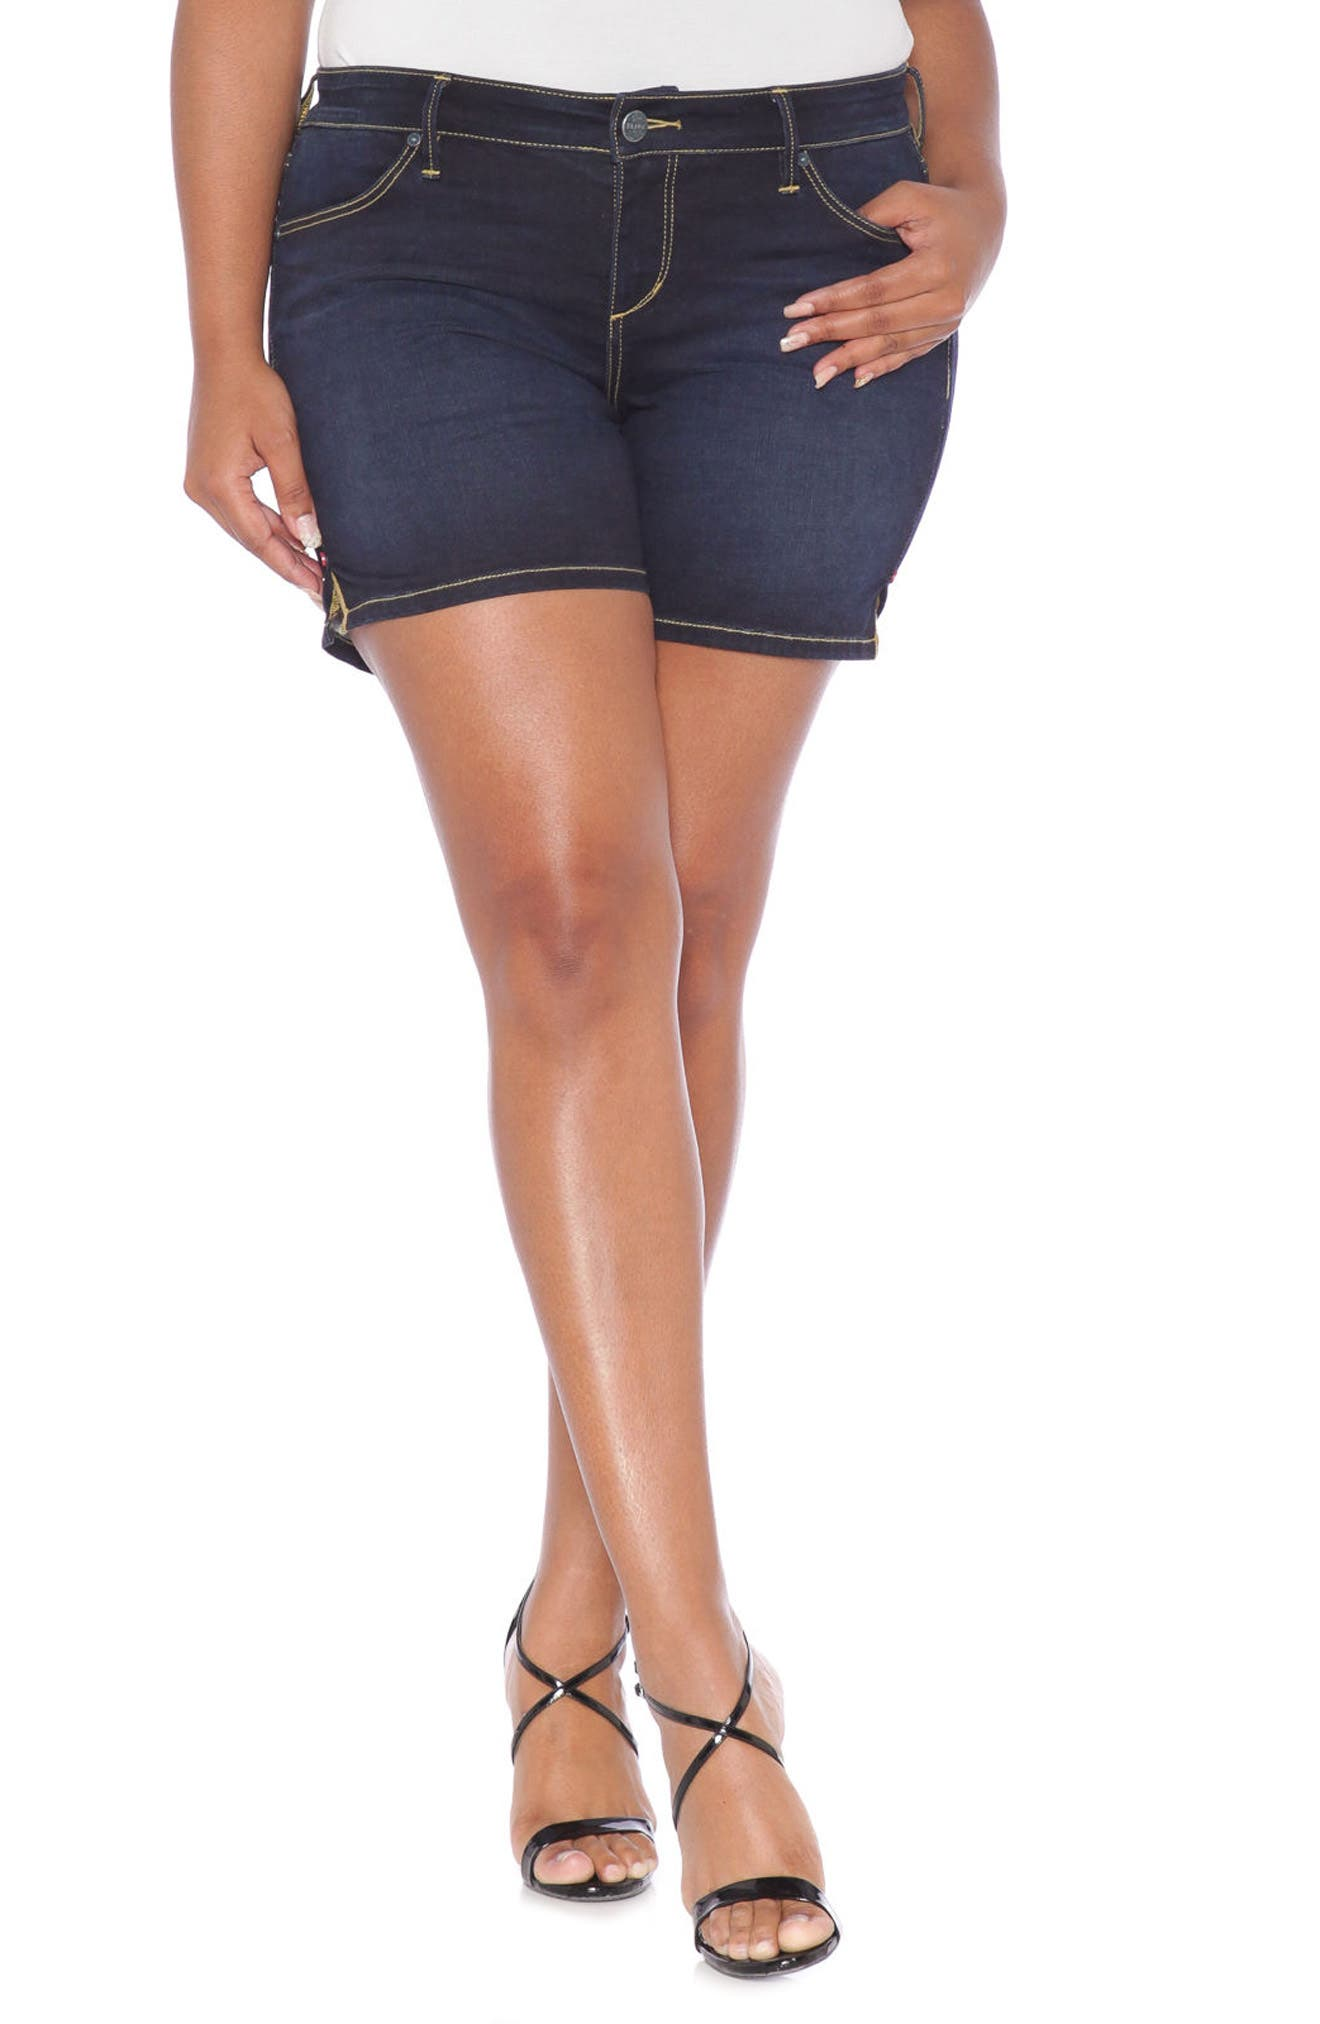 Main Image - SLINK Jeans Stretch Denim Shorts (Summer) (Plus Size)